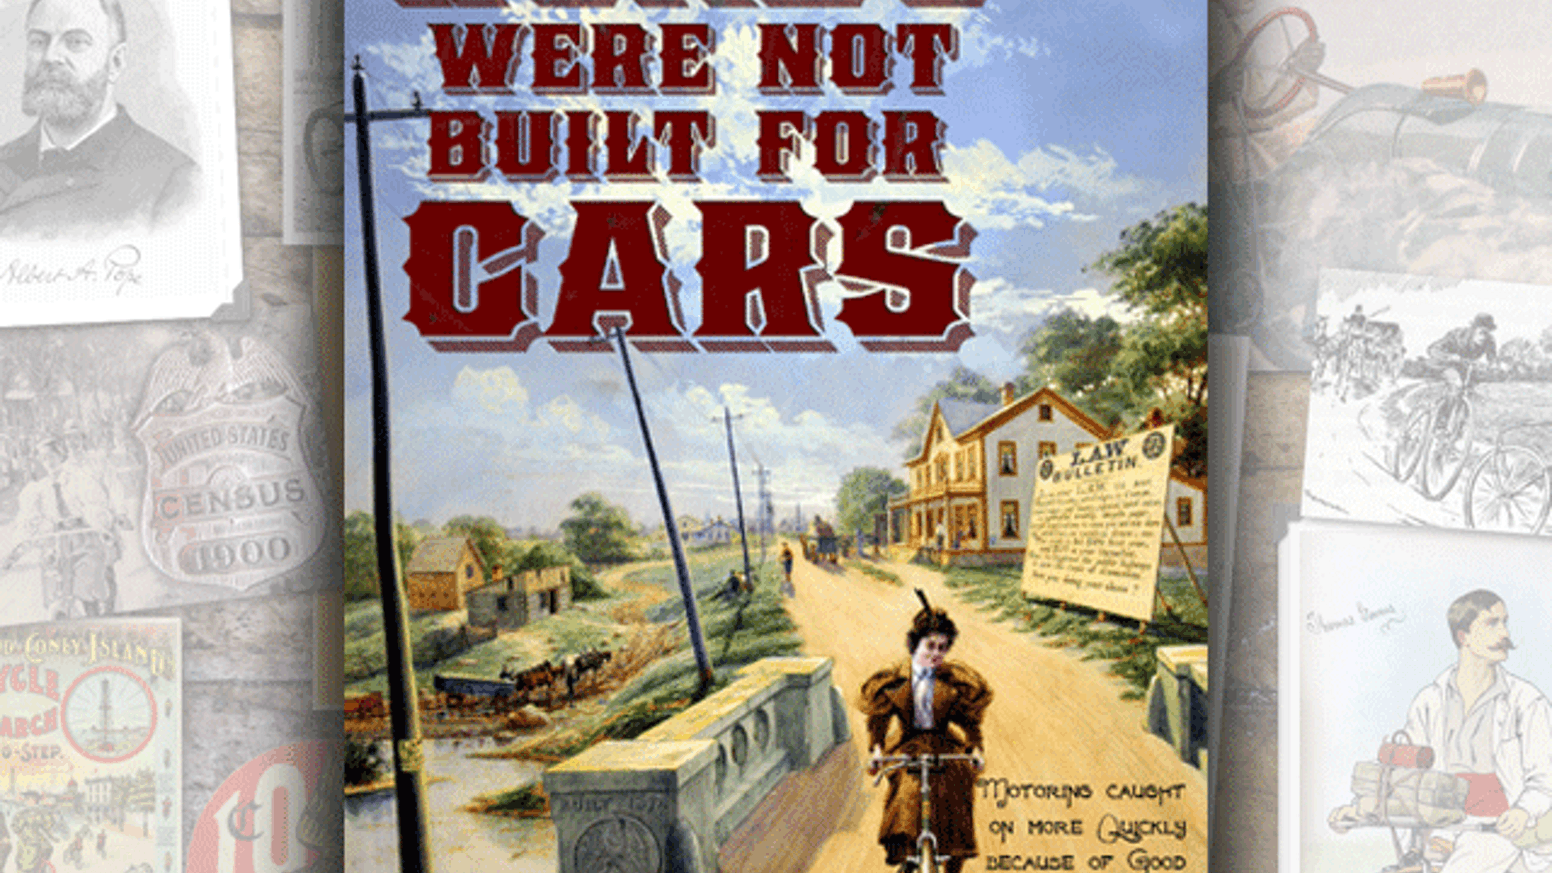 Roads were not built for cars book kindle ipad versions by roads were not built for cars book kindle ipad versions fandeluxe Gallery